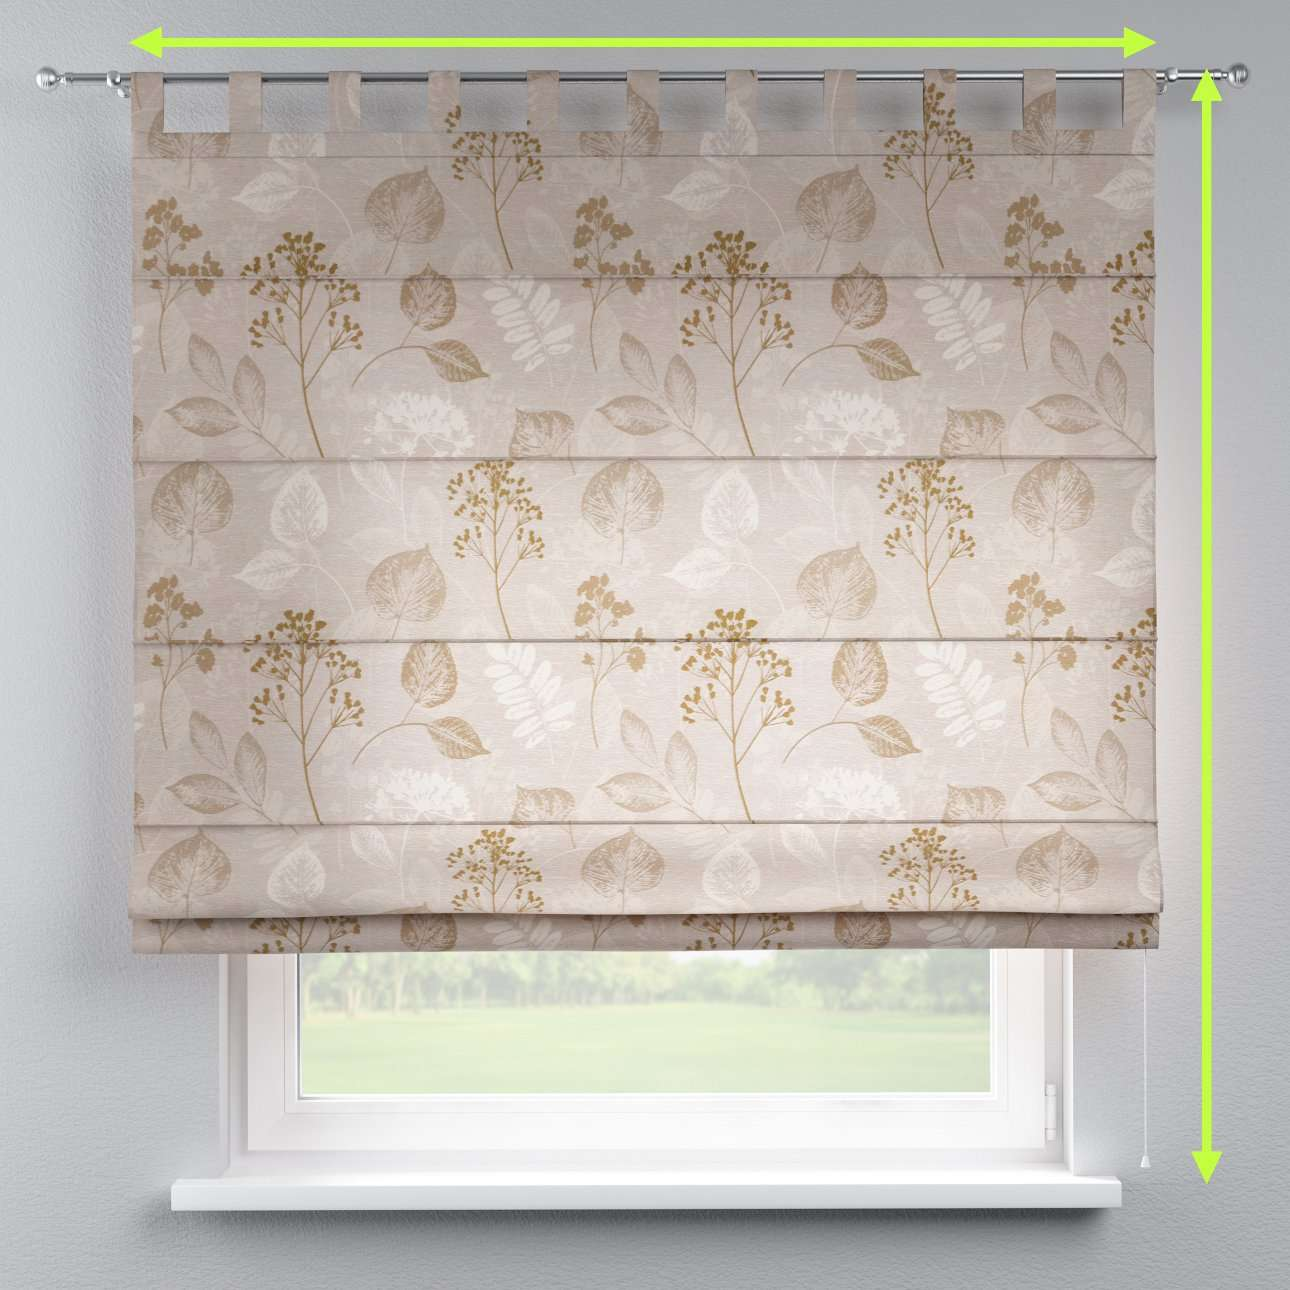 Verona tab top roman blind in collection Norge, fabric: 140-87